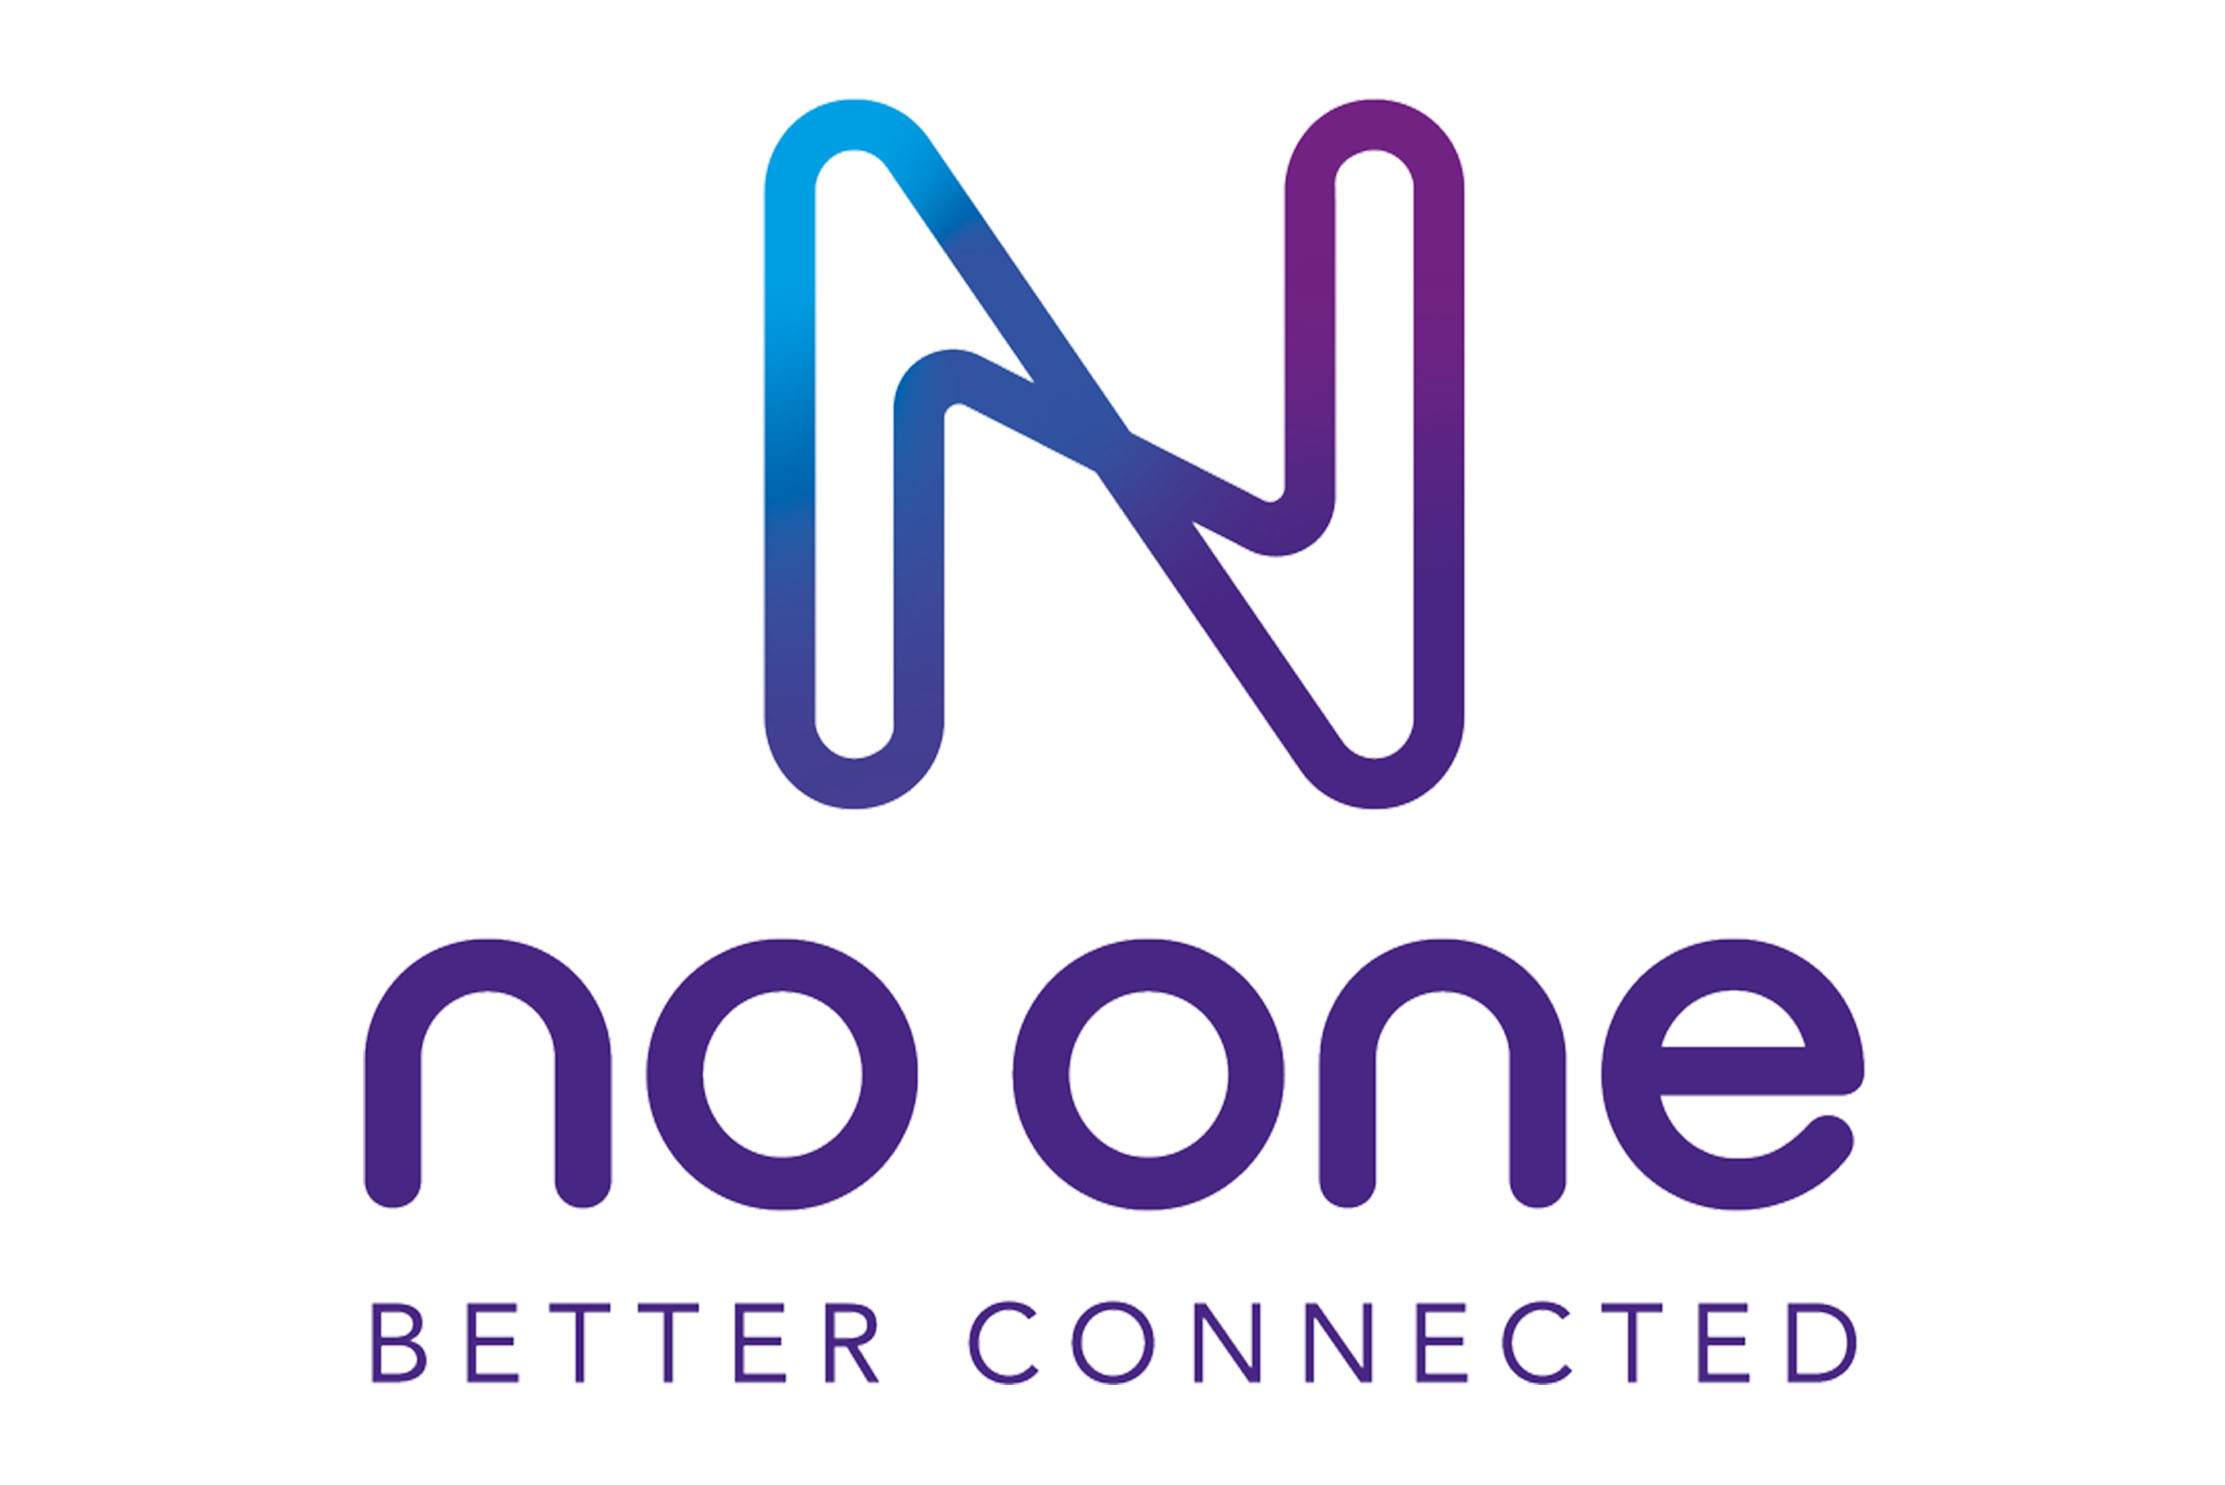 New Sussex-based ISP, No One, has launched a new home broadband service for county residents